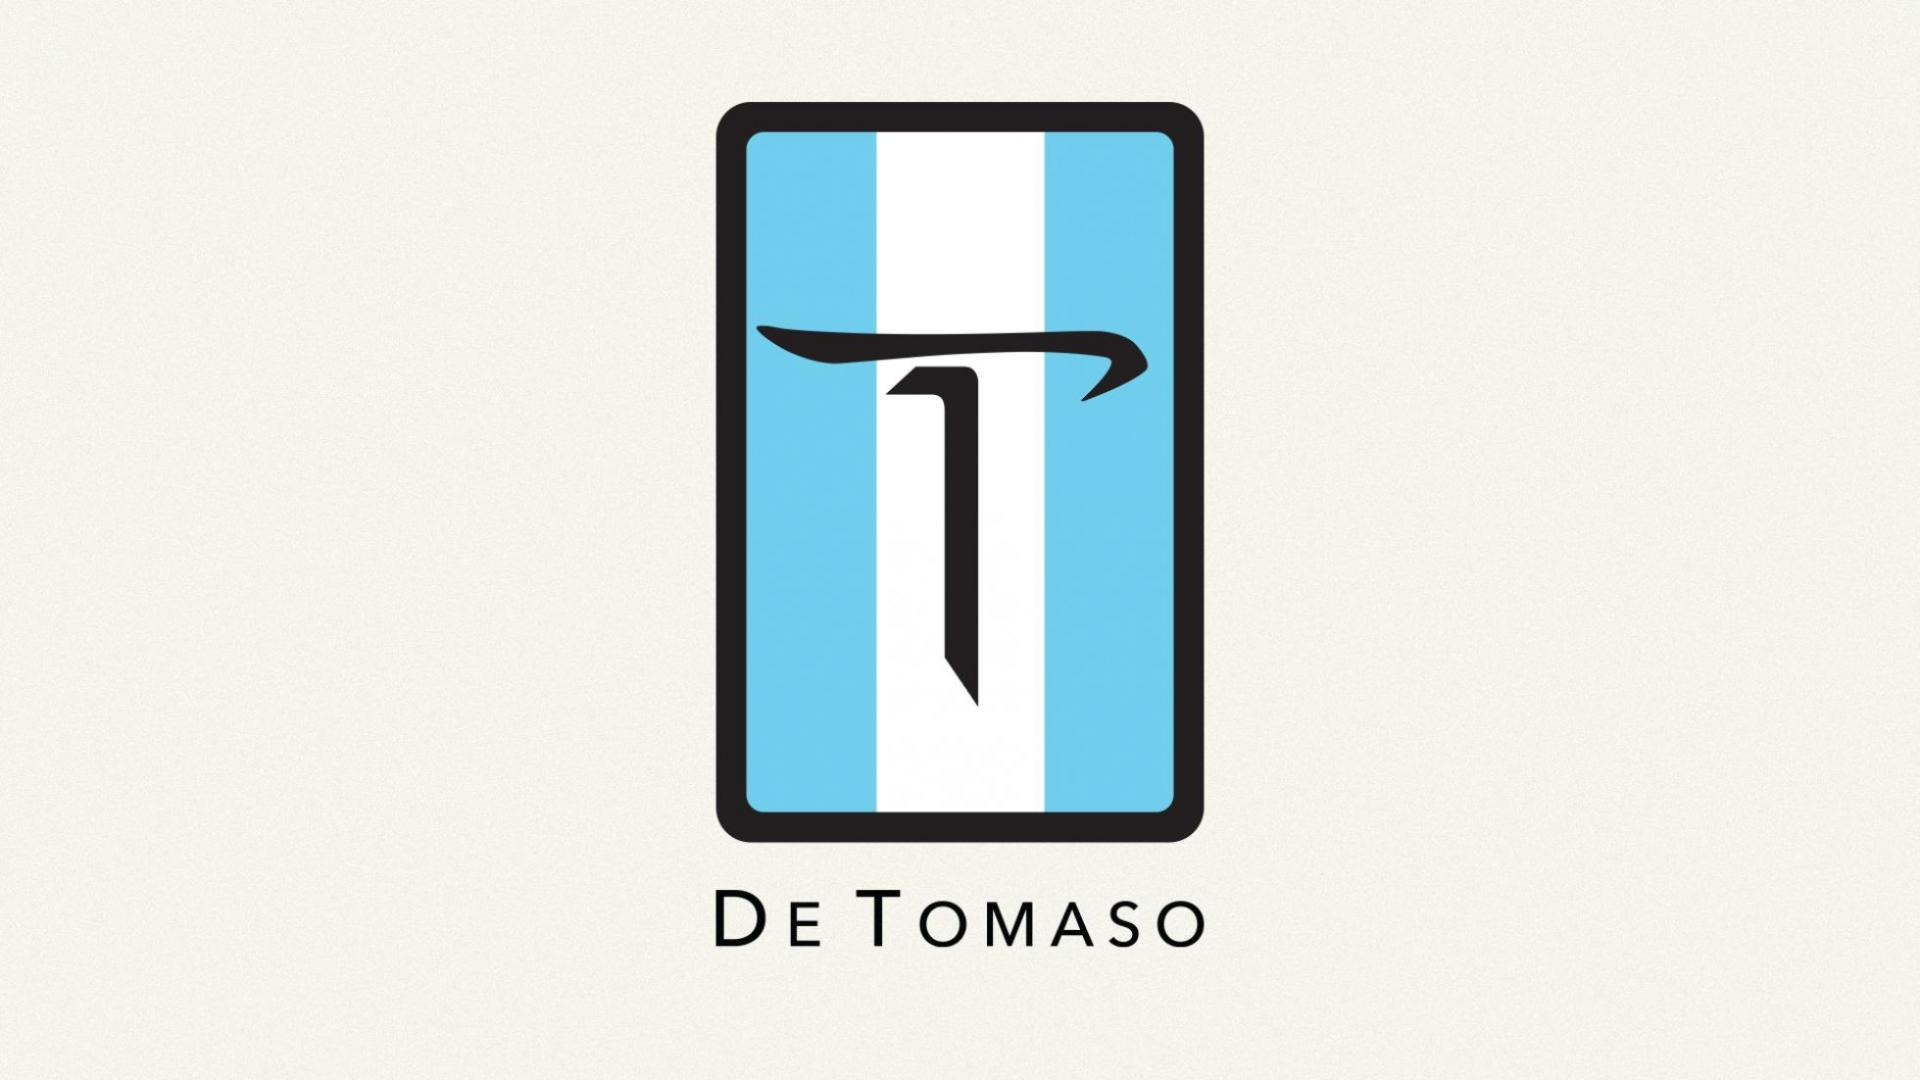 De Tomaso logo badge